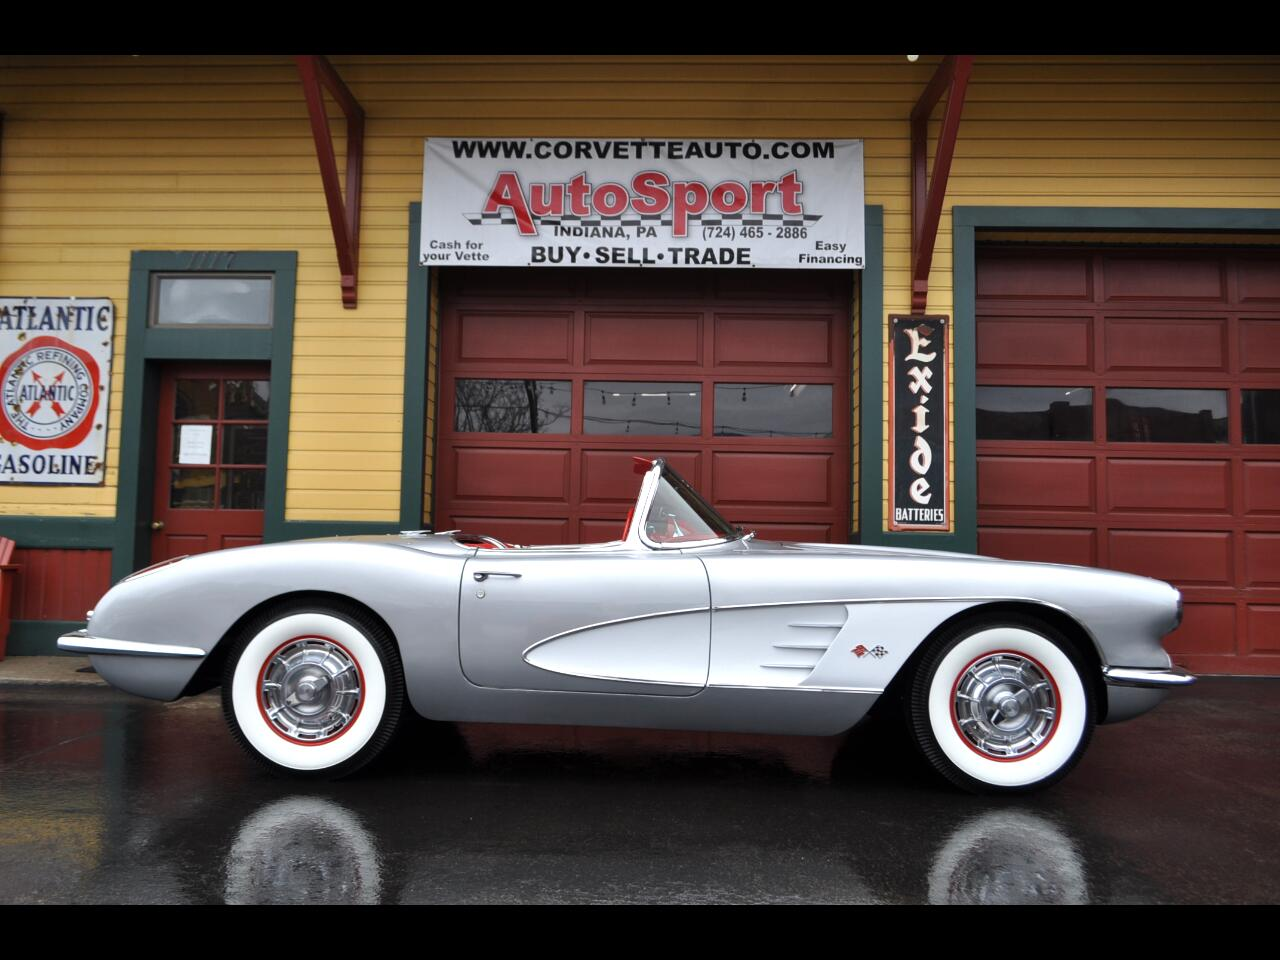 1959 Chevrolet Corvette Inca Silver Red Interior Beautifully Restored Road